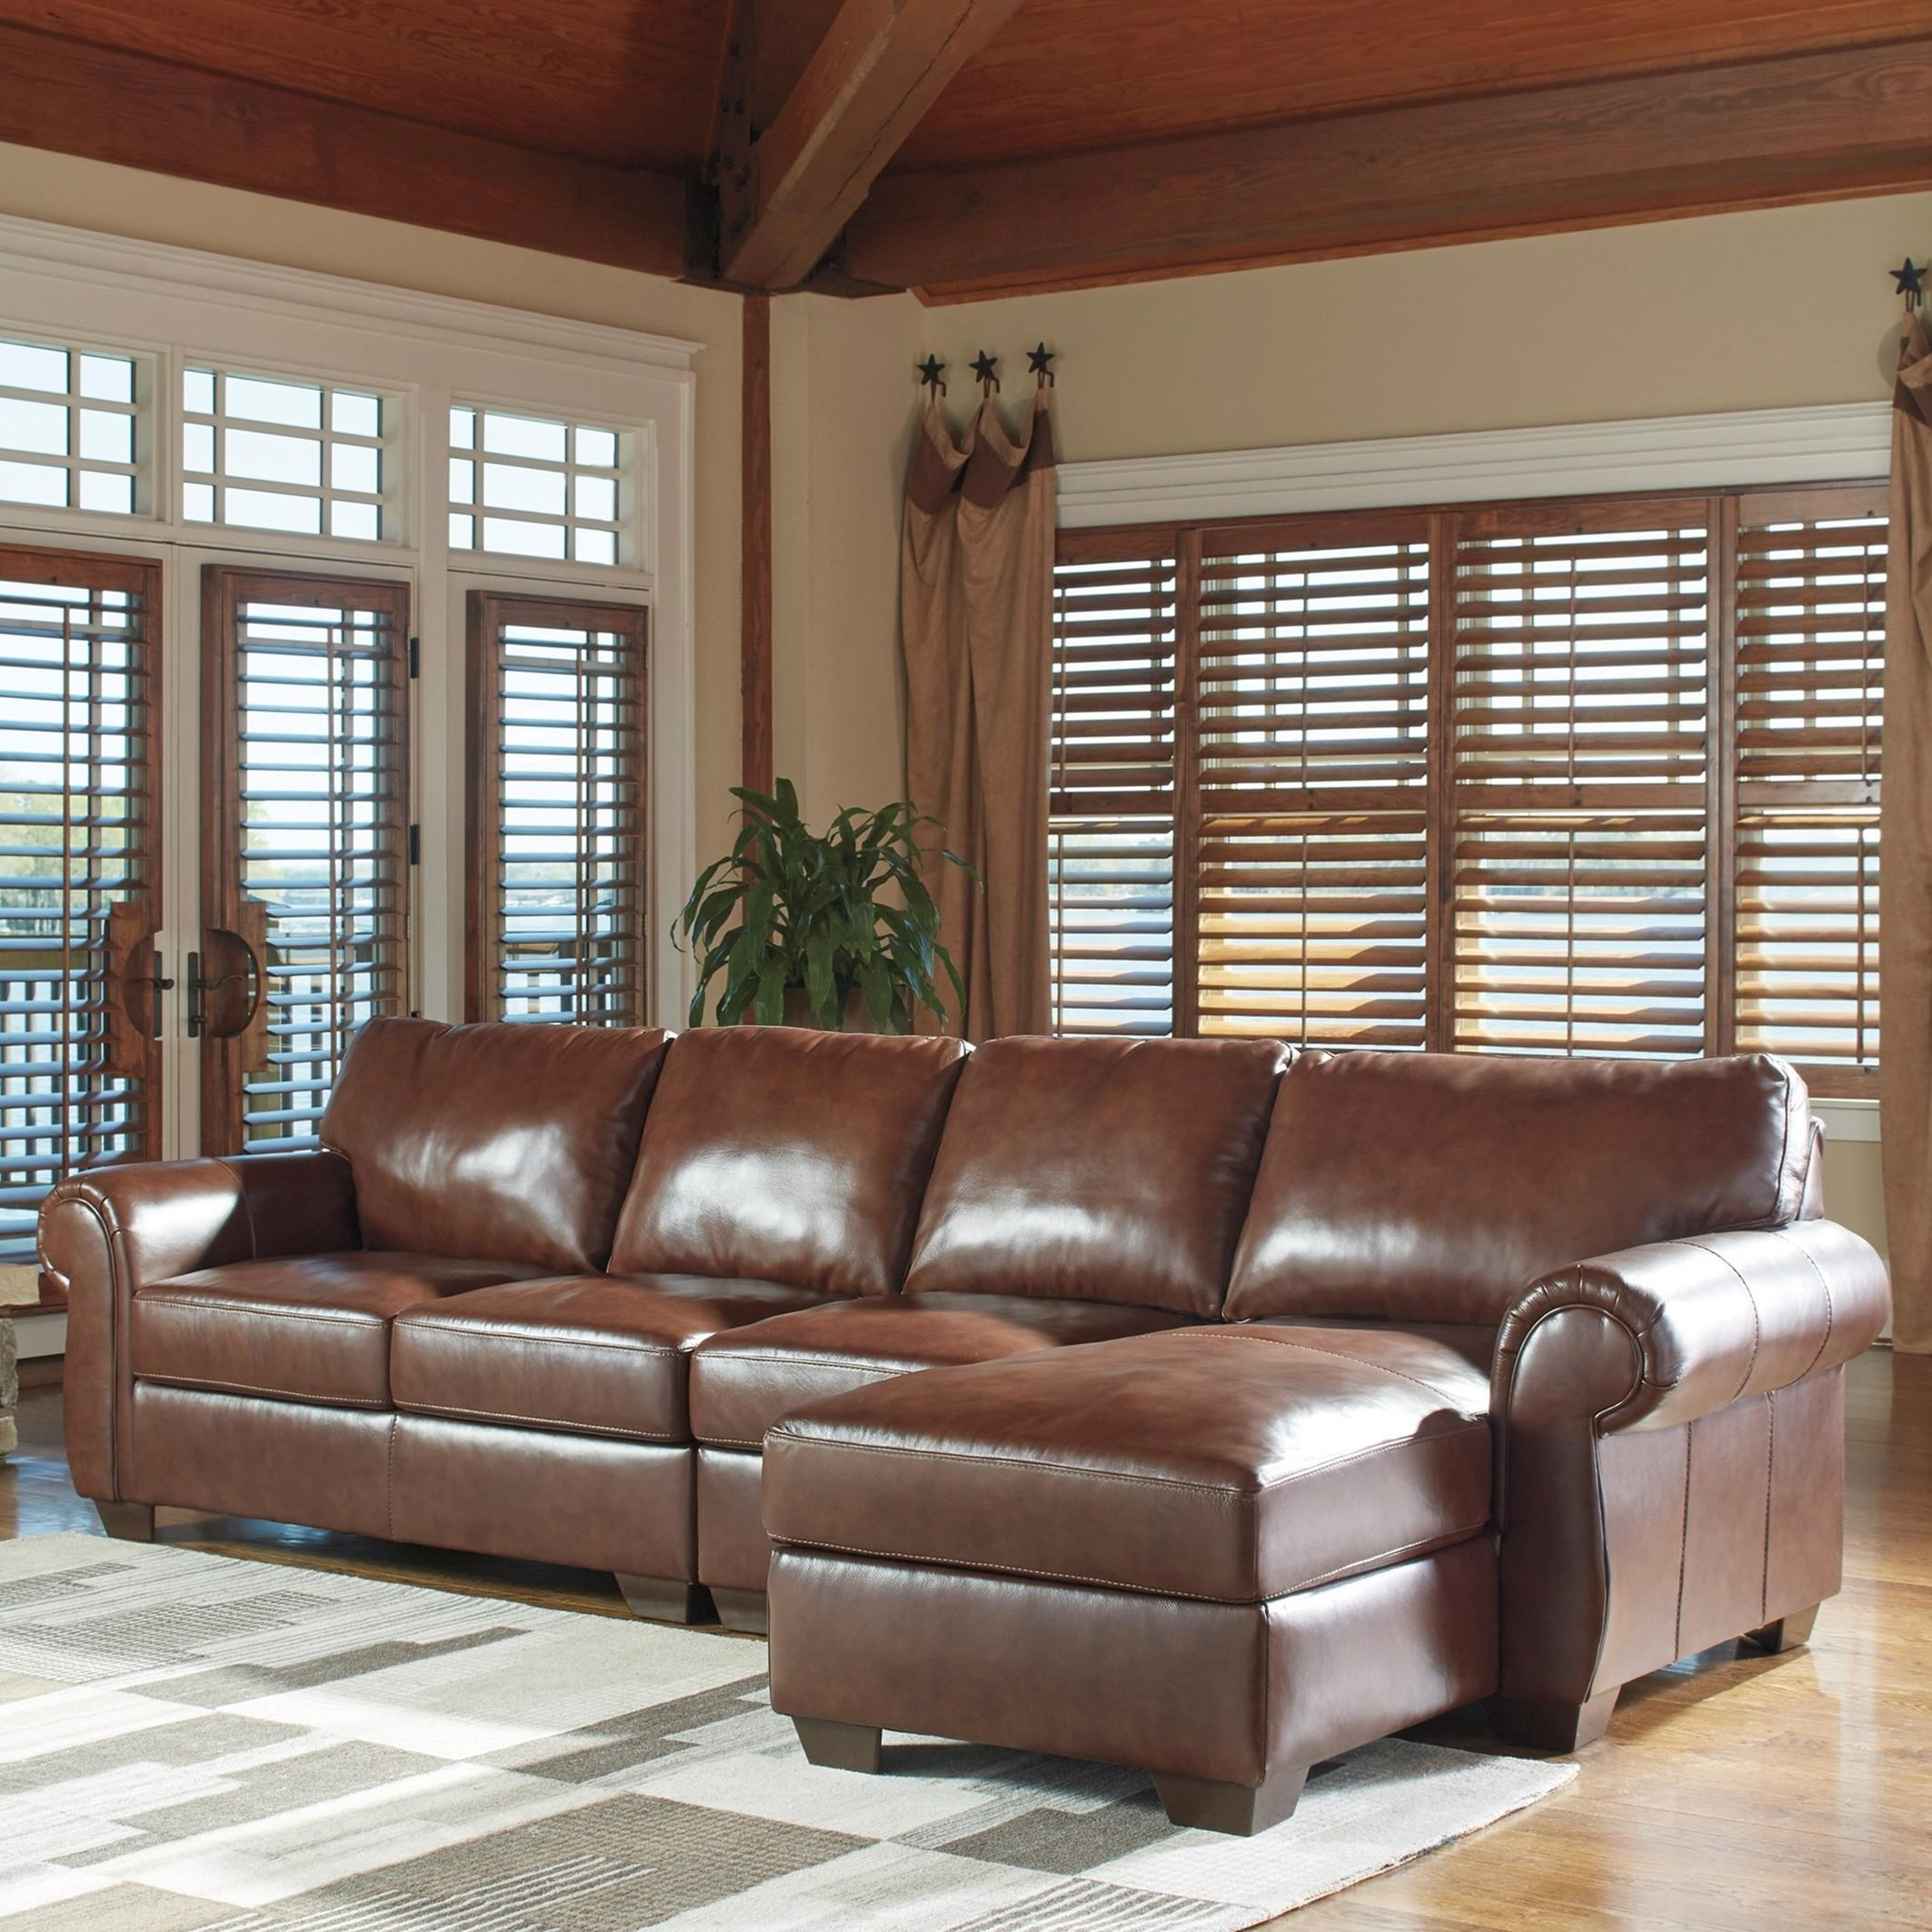 Signature Design by Ashley Lugoro 3-Piece Sectional with Right Chaise - Item Number: 5060255+46+17